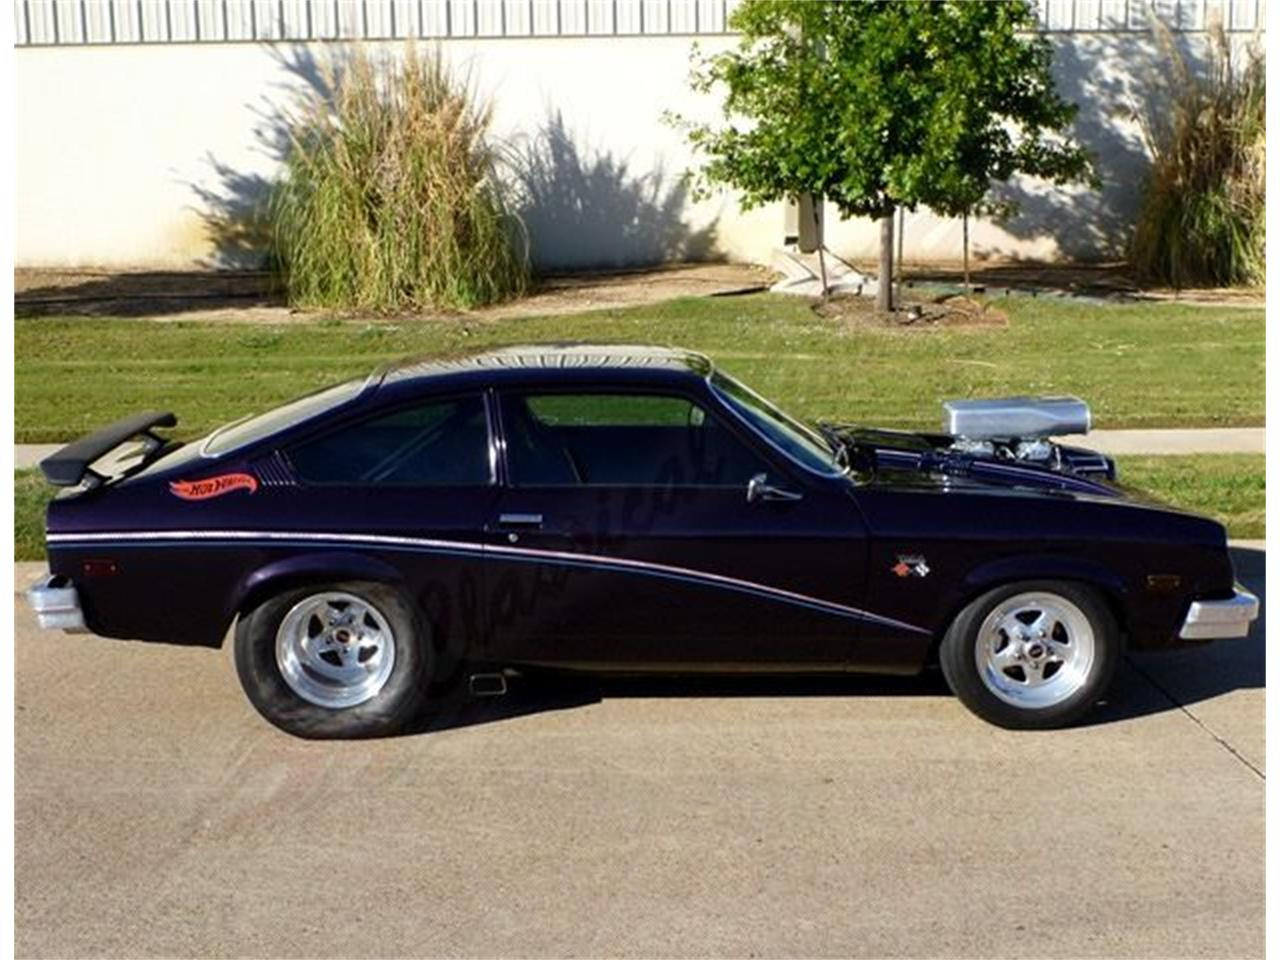 Large Picture of 1974 Vega - $35,000.00 Offered by Classical Gas Enterprises - FTBF